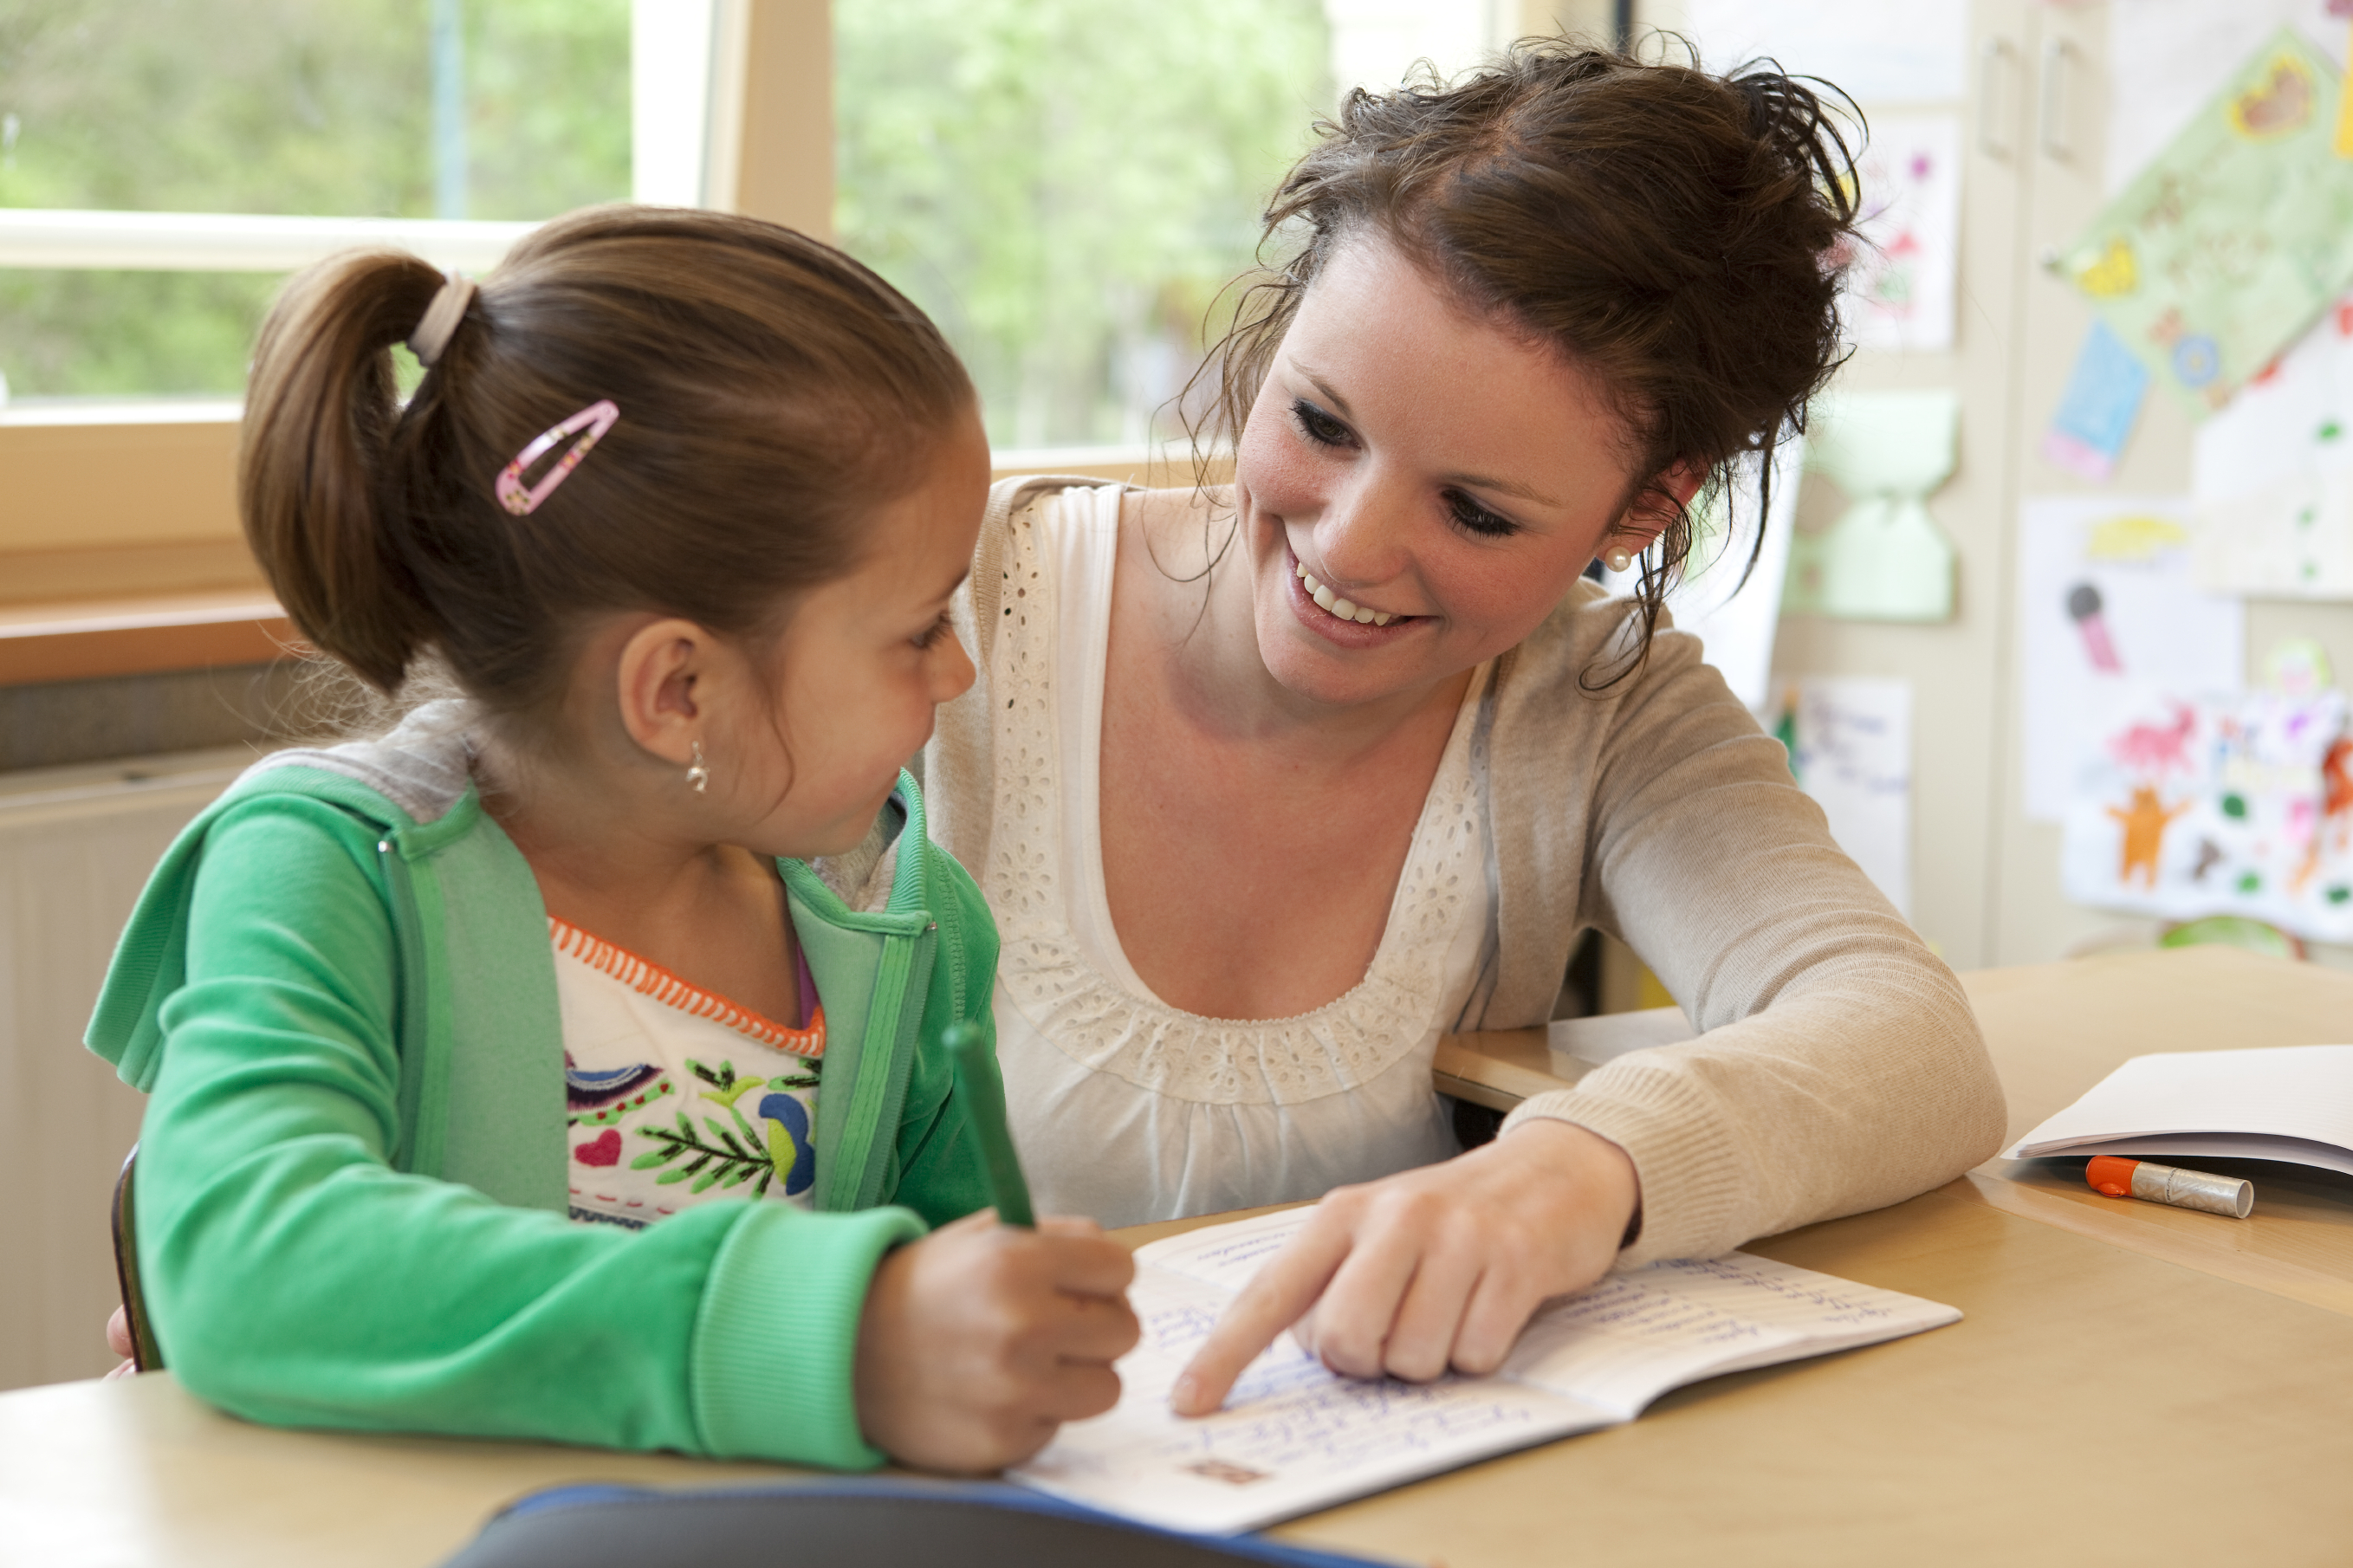 Audiology and Speech Pathology study instruction